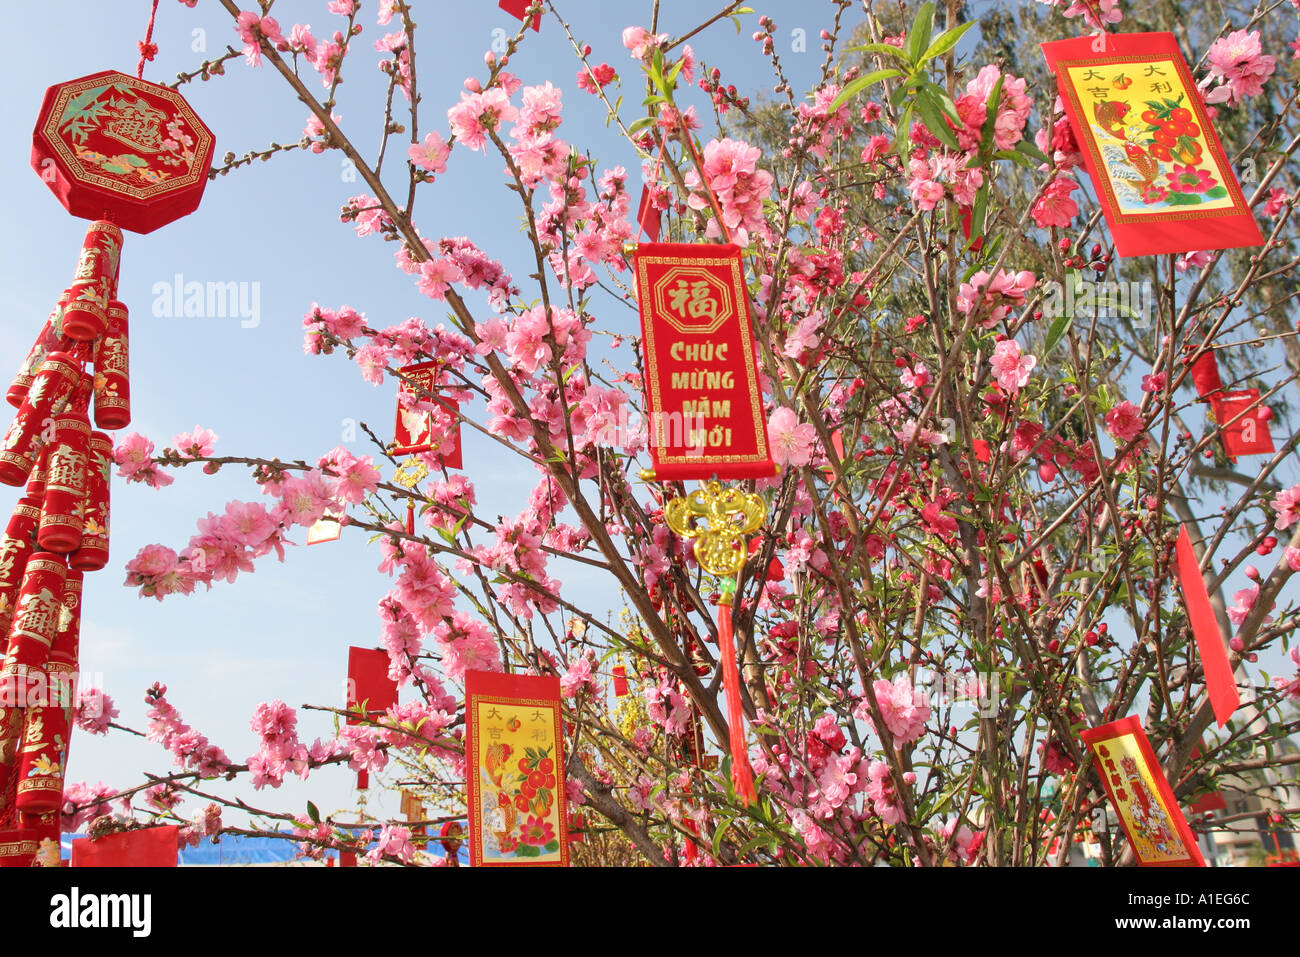 Stock Photo - California Orange County Westminster Little Saigon Happy New Year banners Asian culture